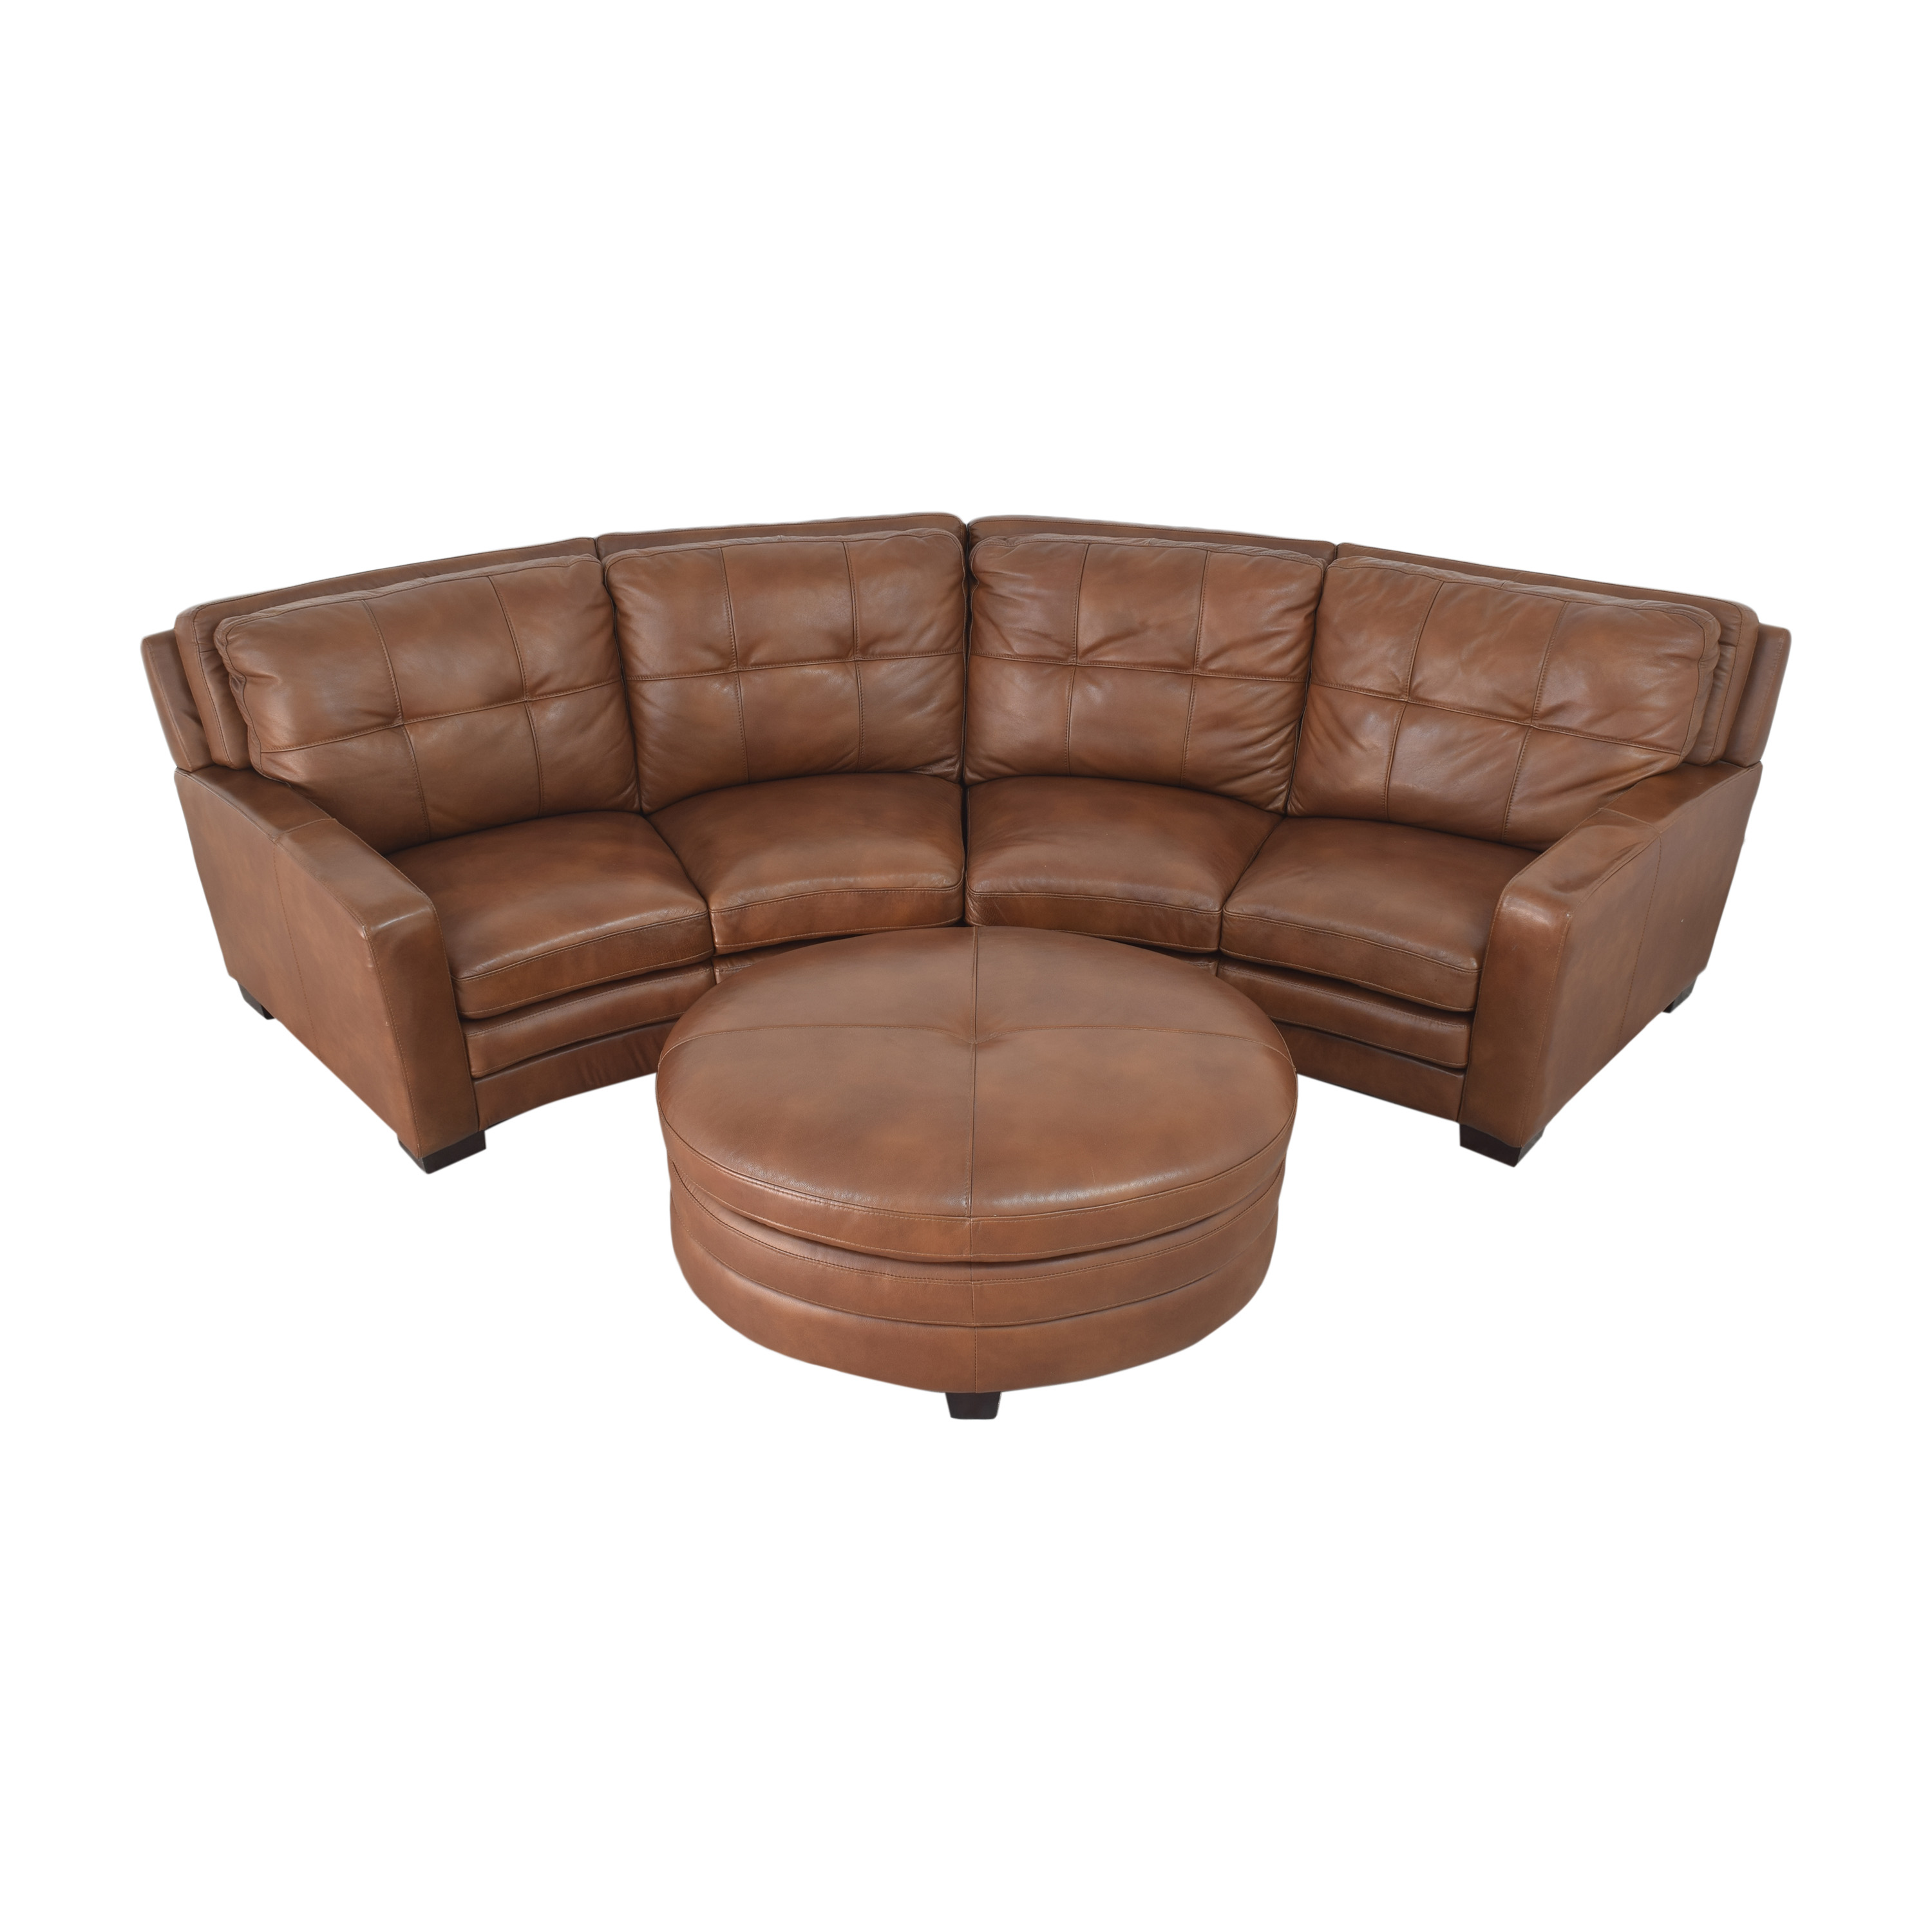 Crescent Sectional Sofa with Ottoman price